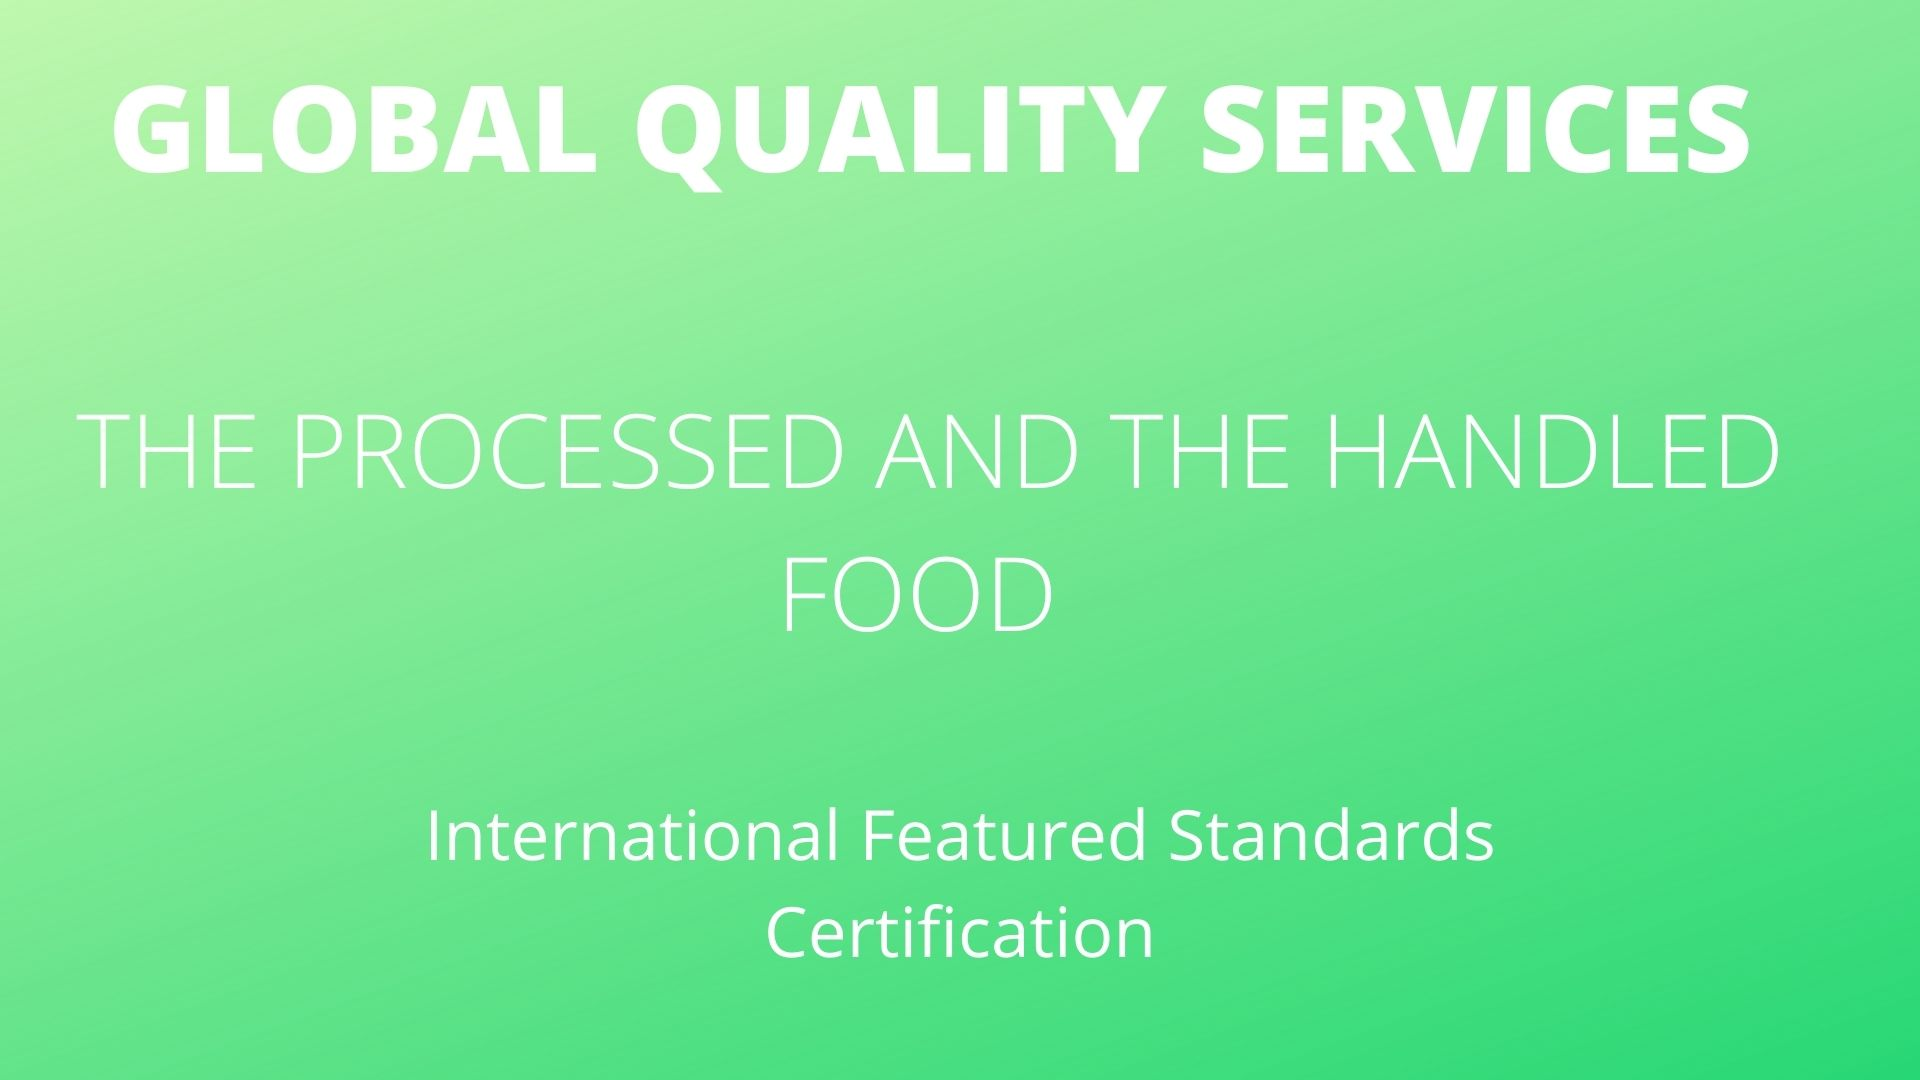 THE PROCESSED AND THE HANDLED FOOD - IFS CERTIFICATION